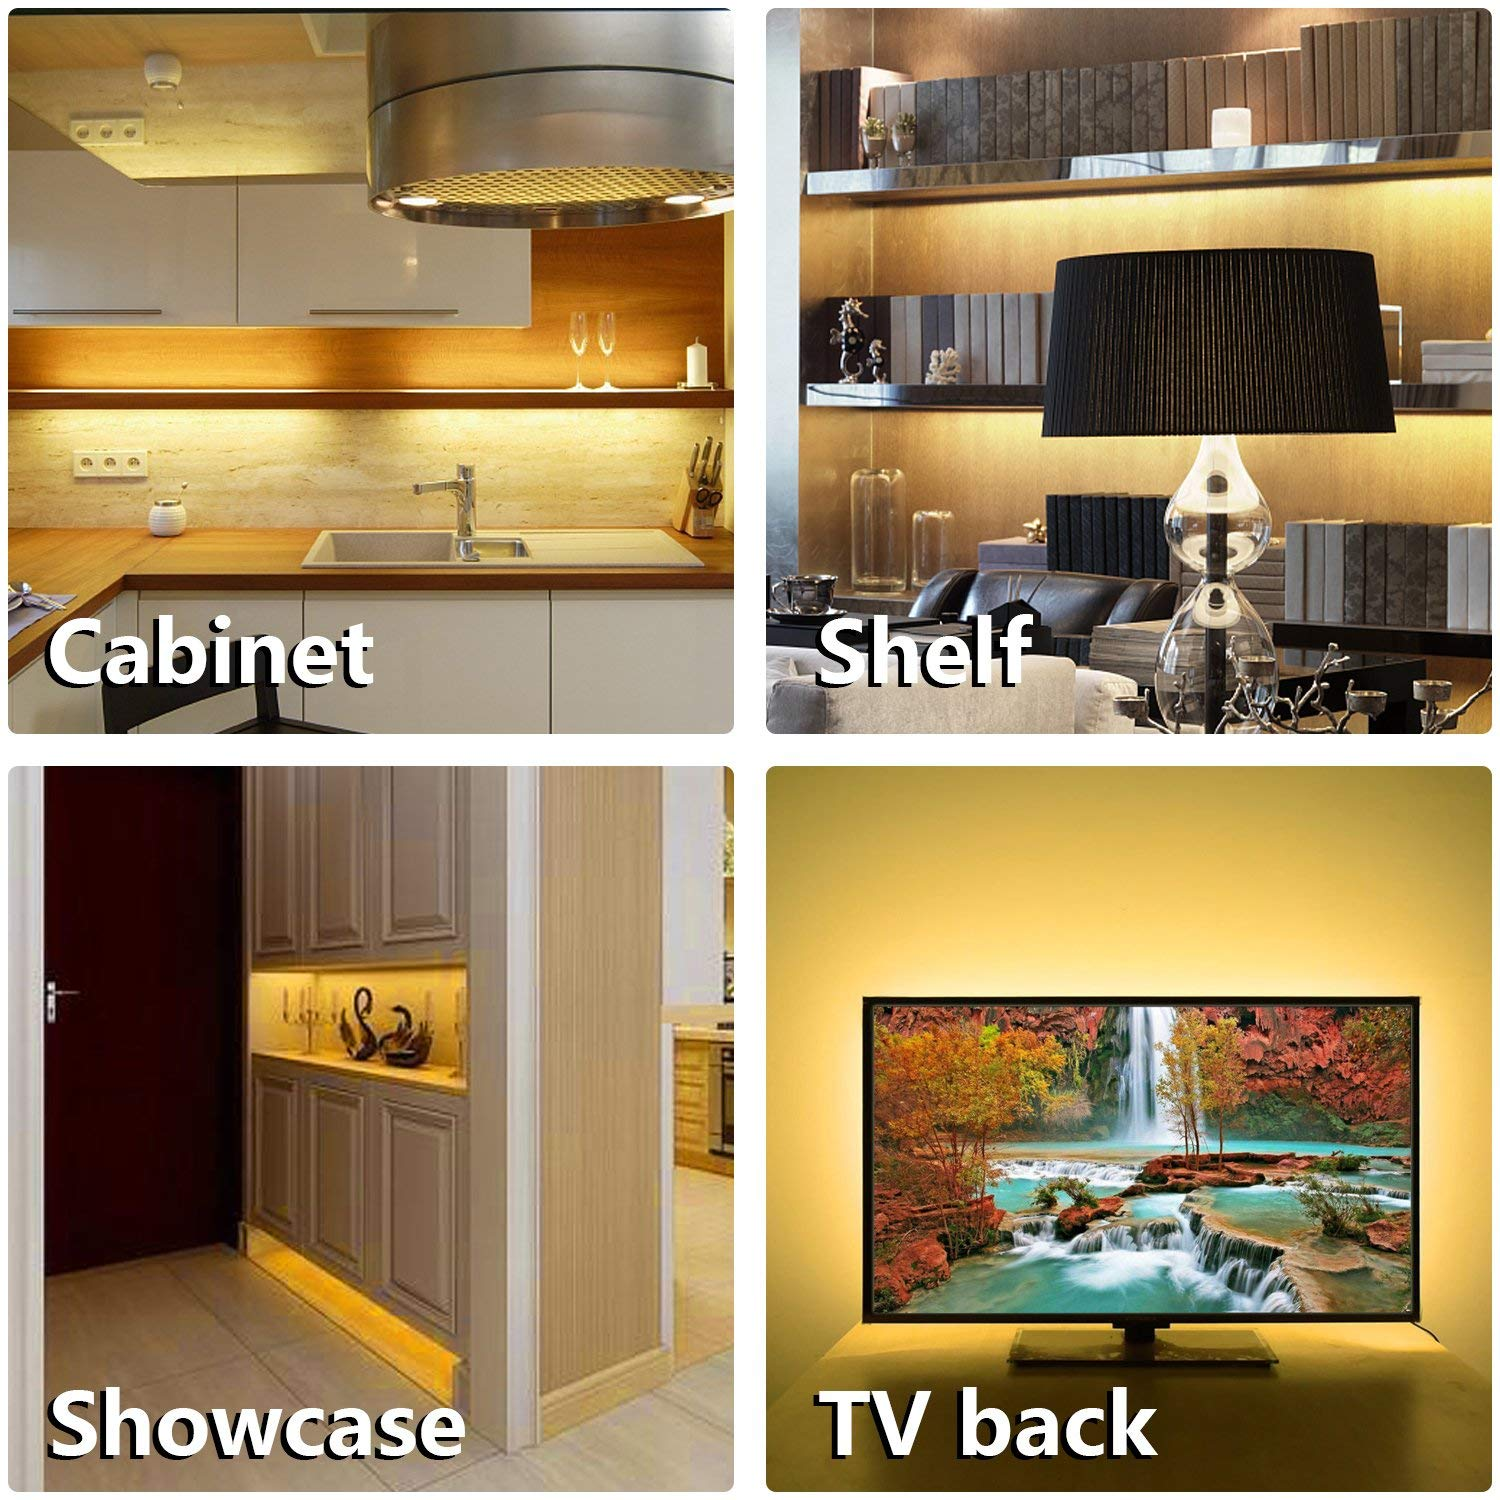 The Wobane LED systems are great to upgrade your Cabinets, Closet, and Desk. Sufficient brightness & Energy saving for Bookshelf, Wardrobe, & kitchen island.